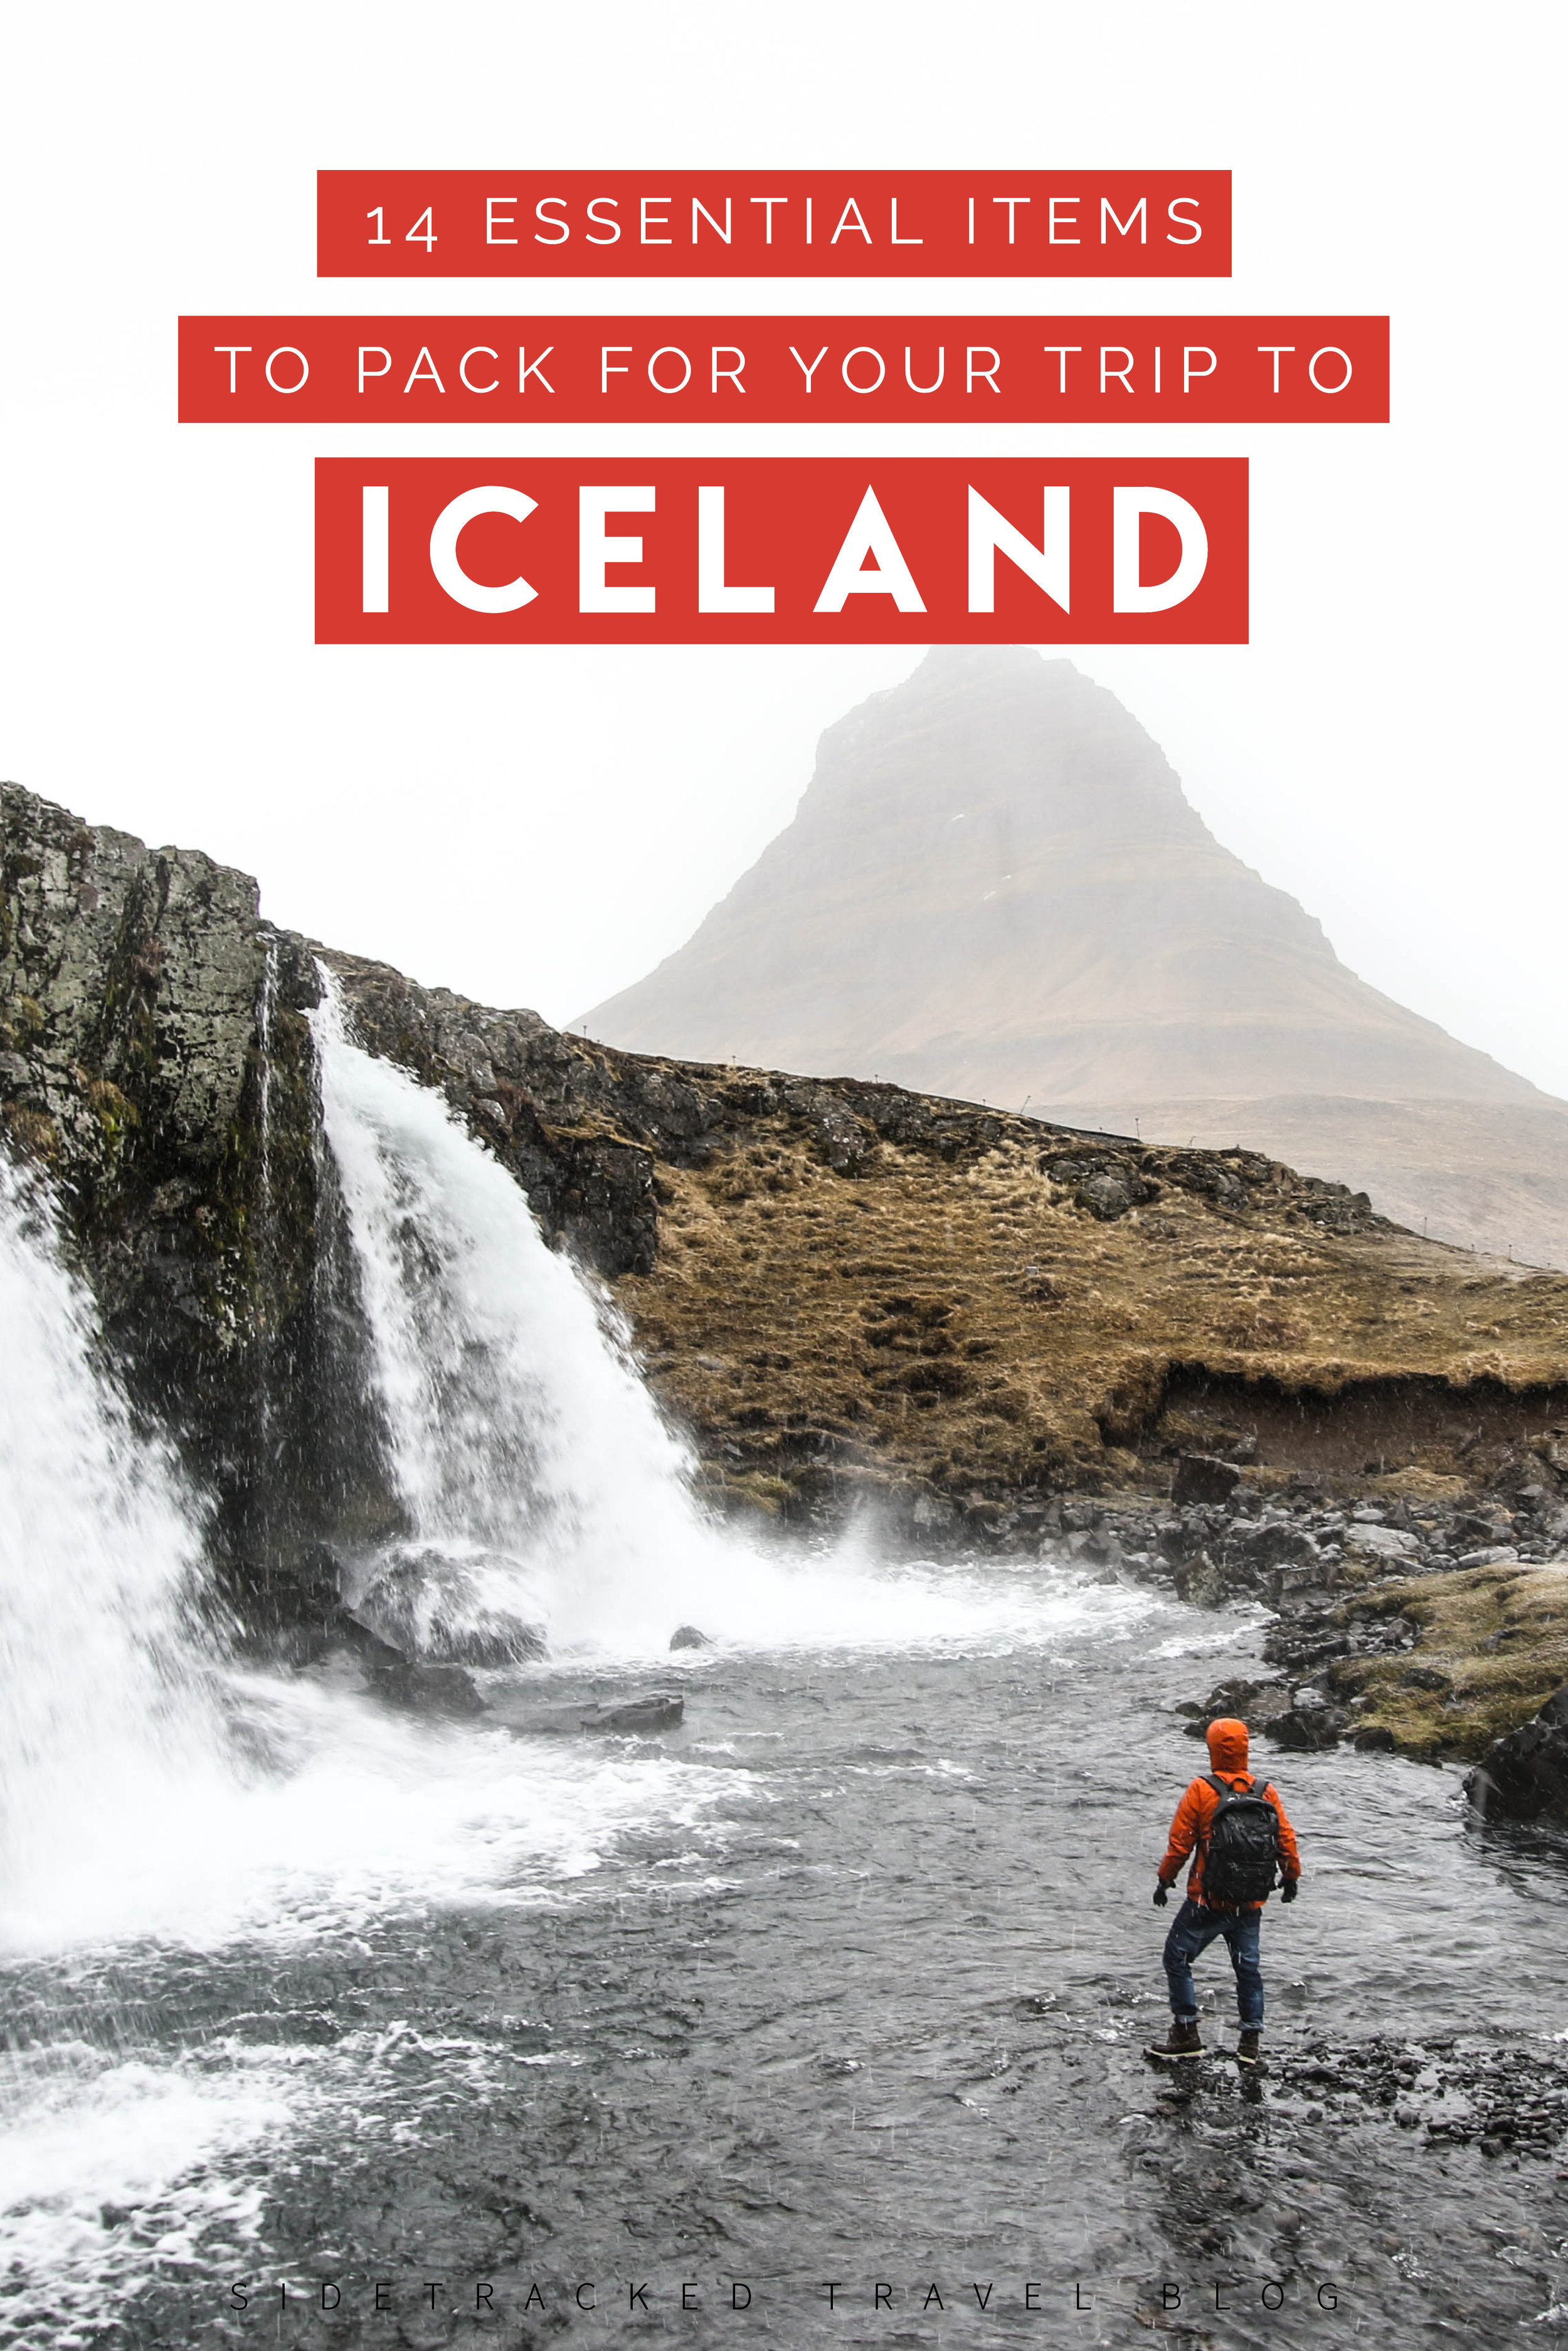 With temperatures and weather conditions constantly changing on this remote island in the North Atlantic, it's absolutely vital to pack the right things. Here are 14 essential items that will allow you to focus on having the best possible time exploring Iceland!